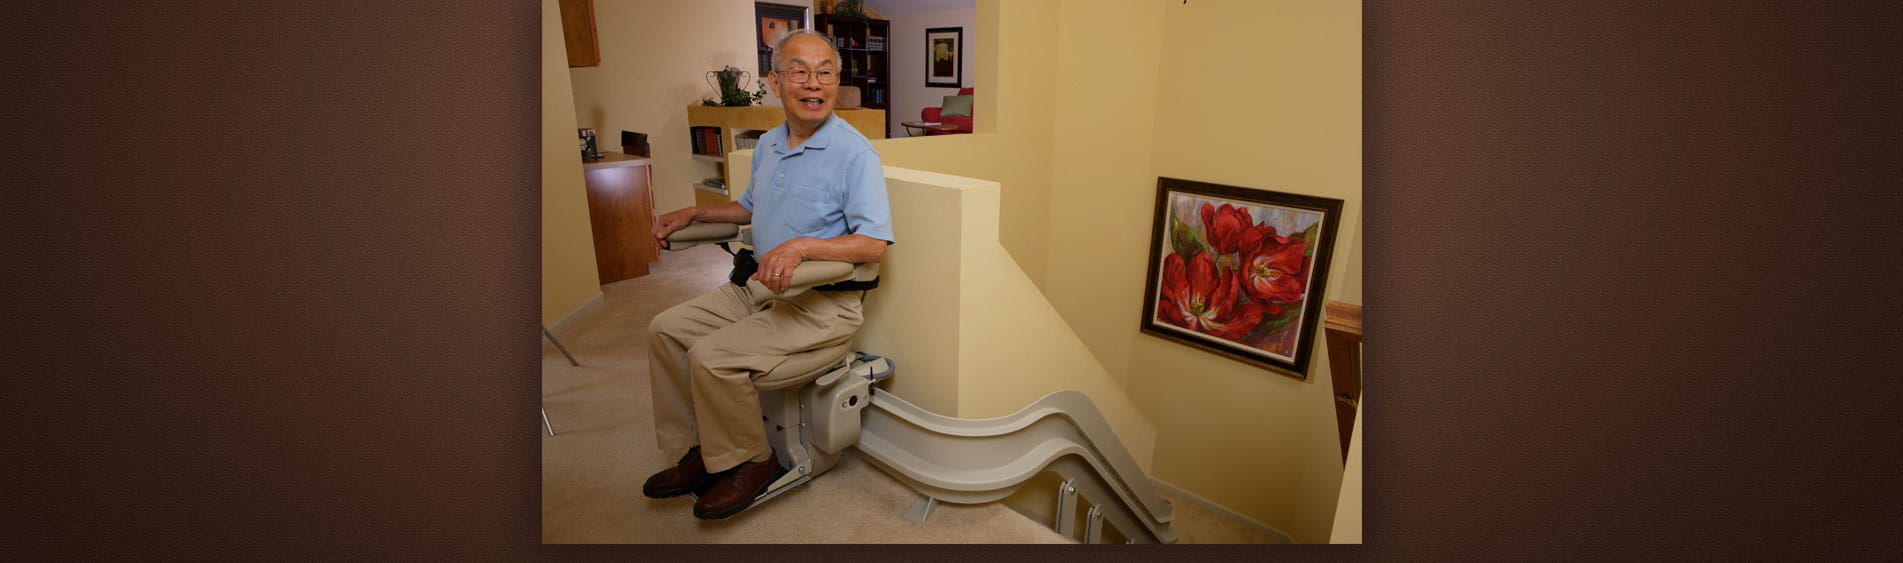 Elderly Man on Stairlifts